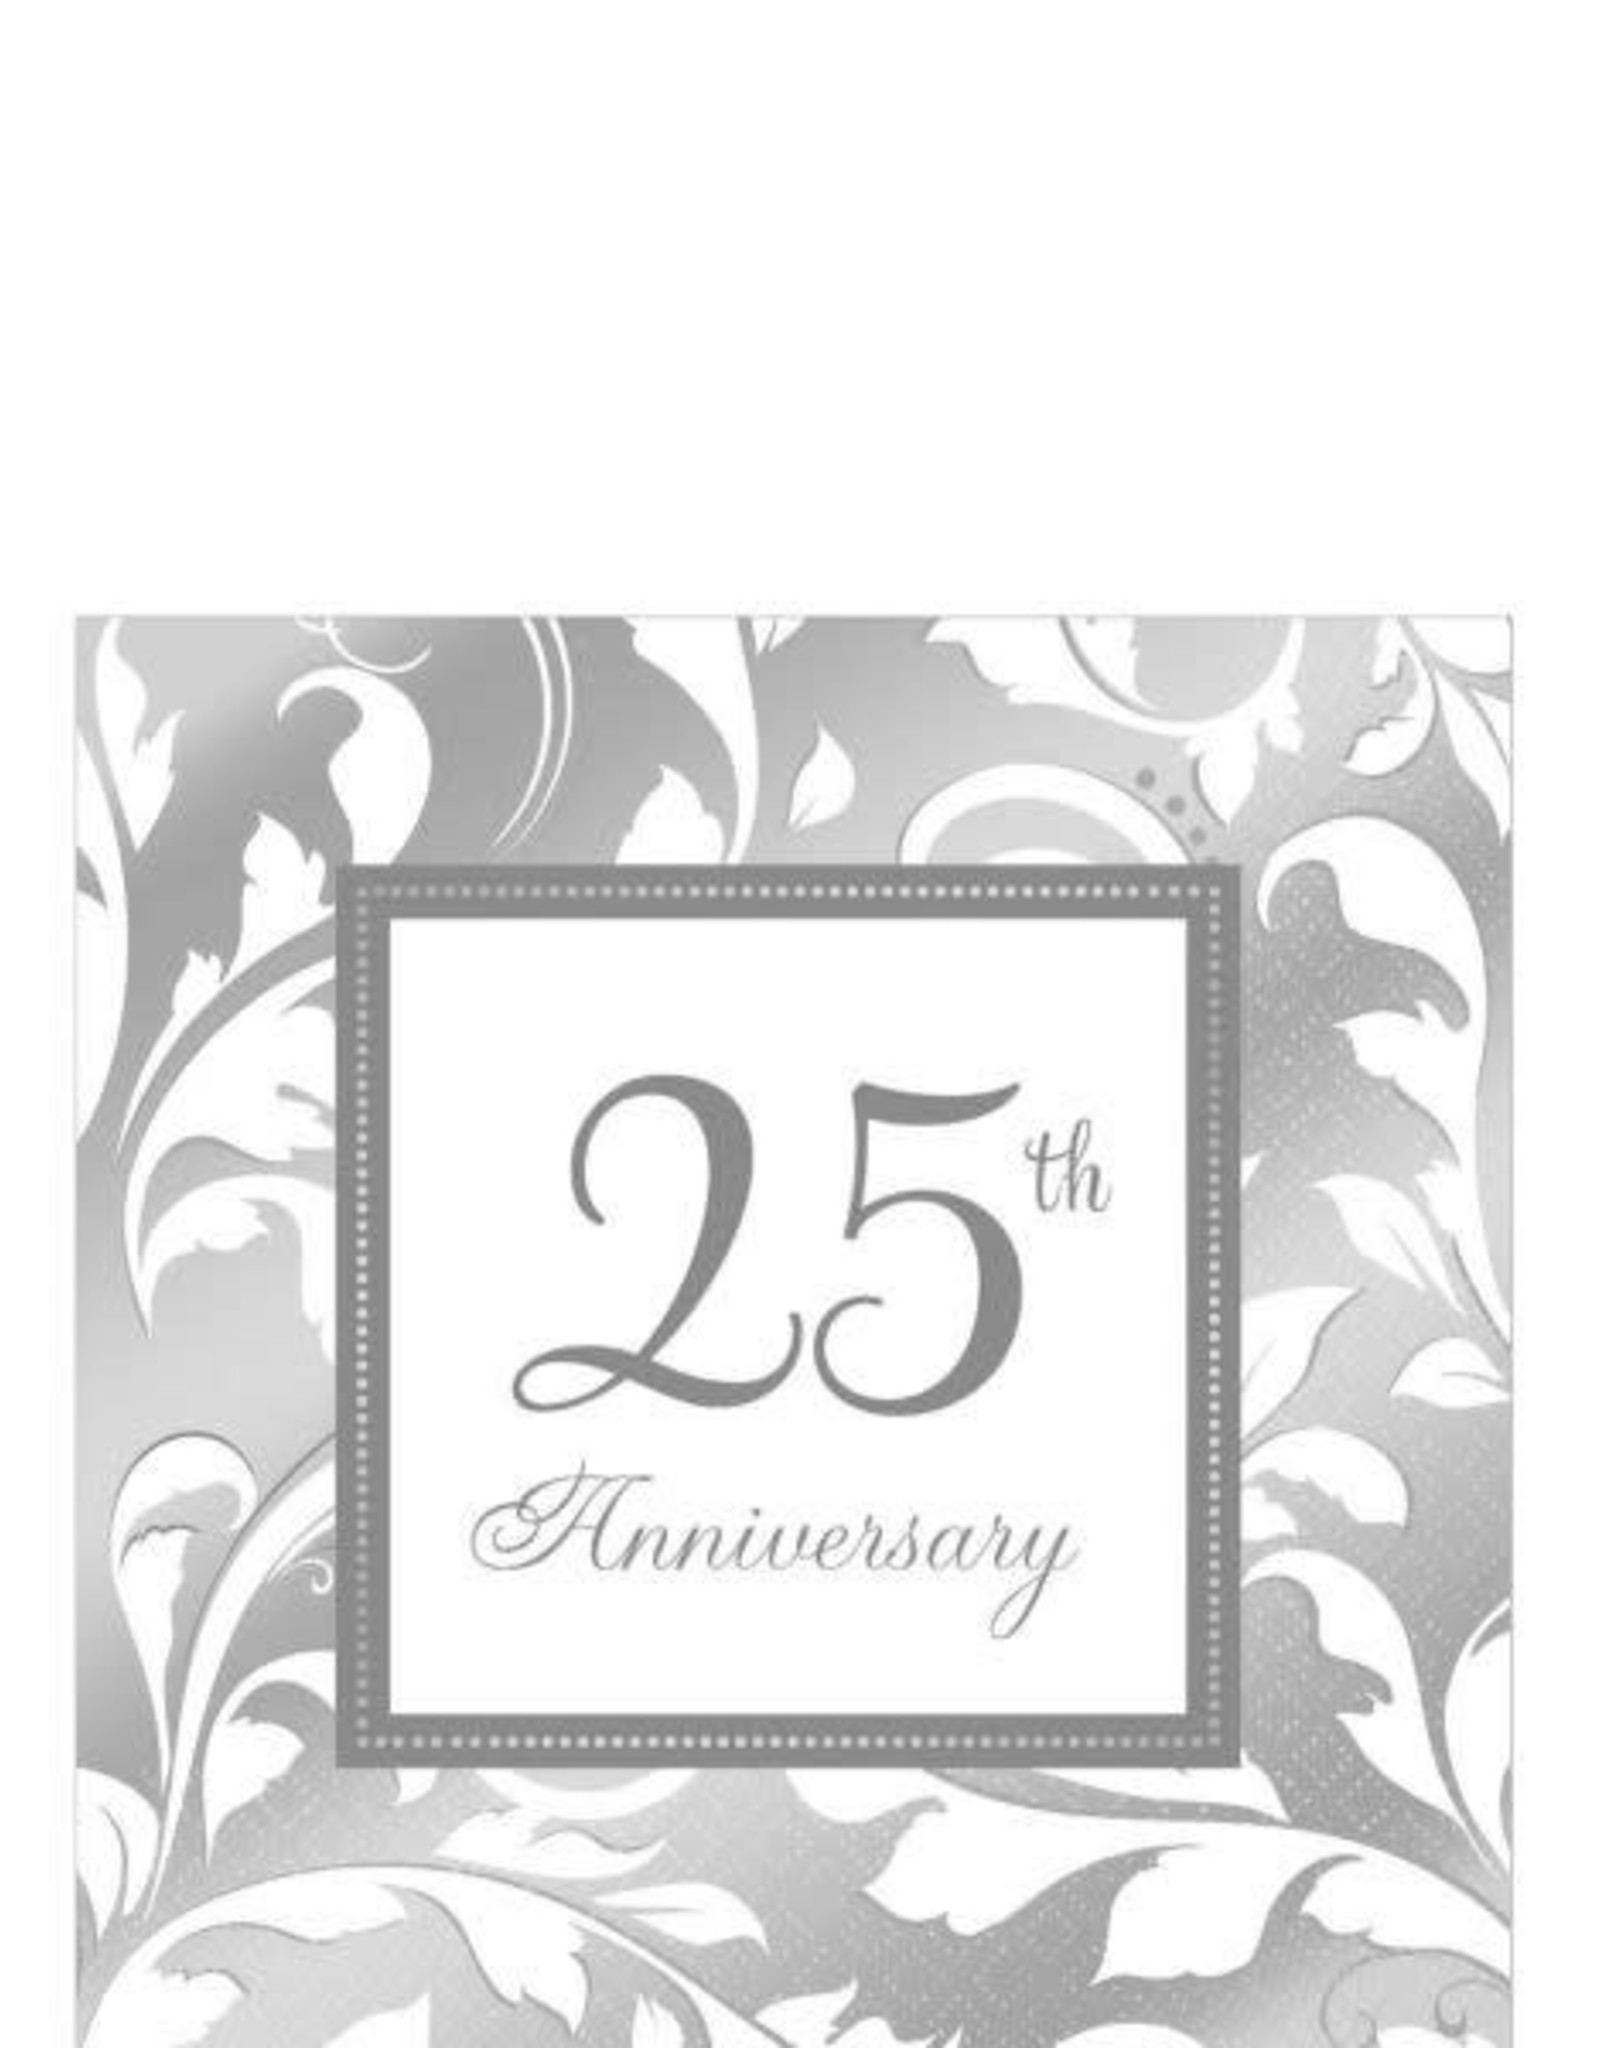 25th Anniversary Beverage Napkins 16CT